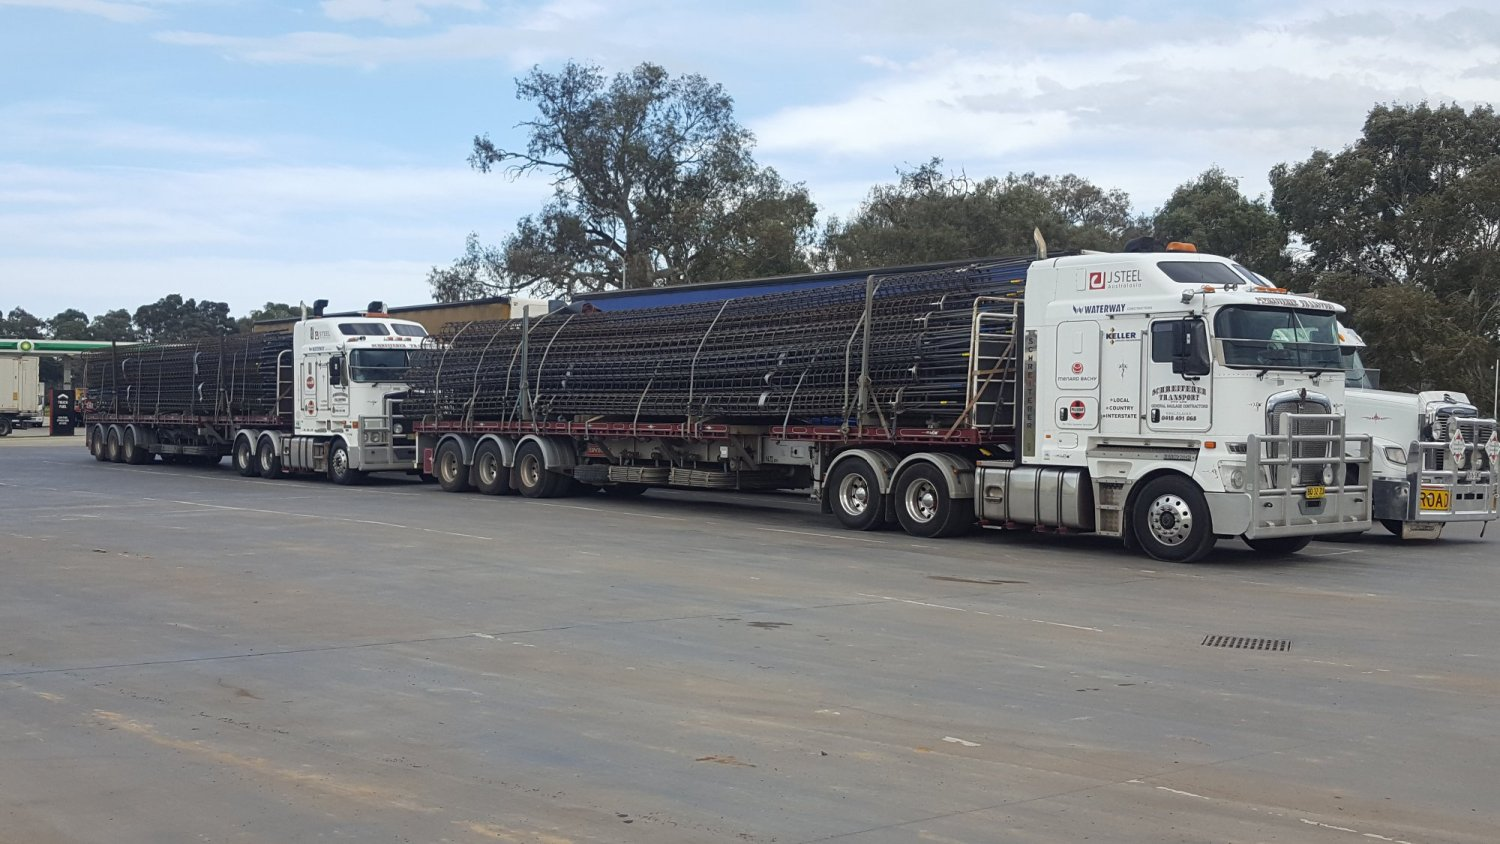 2 Truck Loads of Cages - Brisbane to Sydney